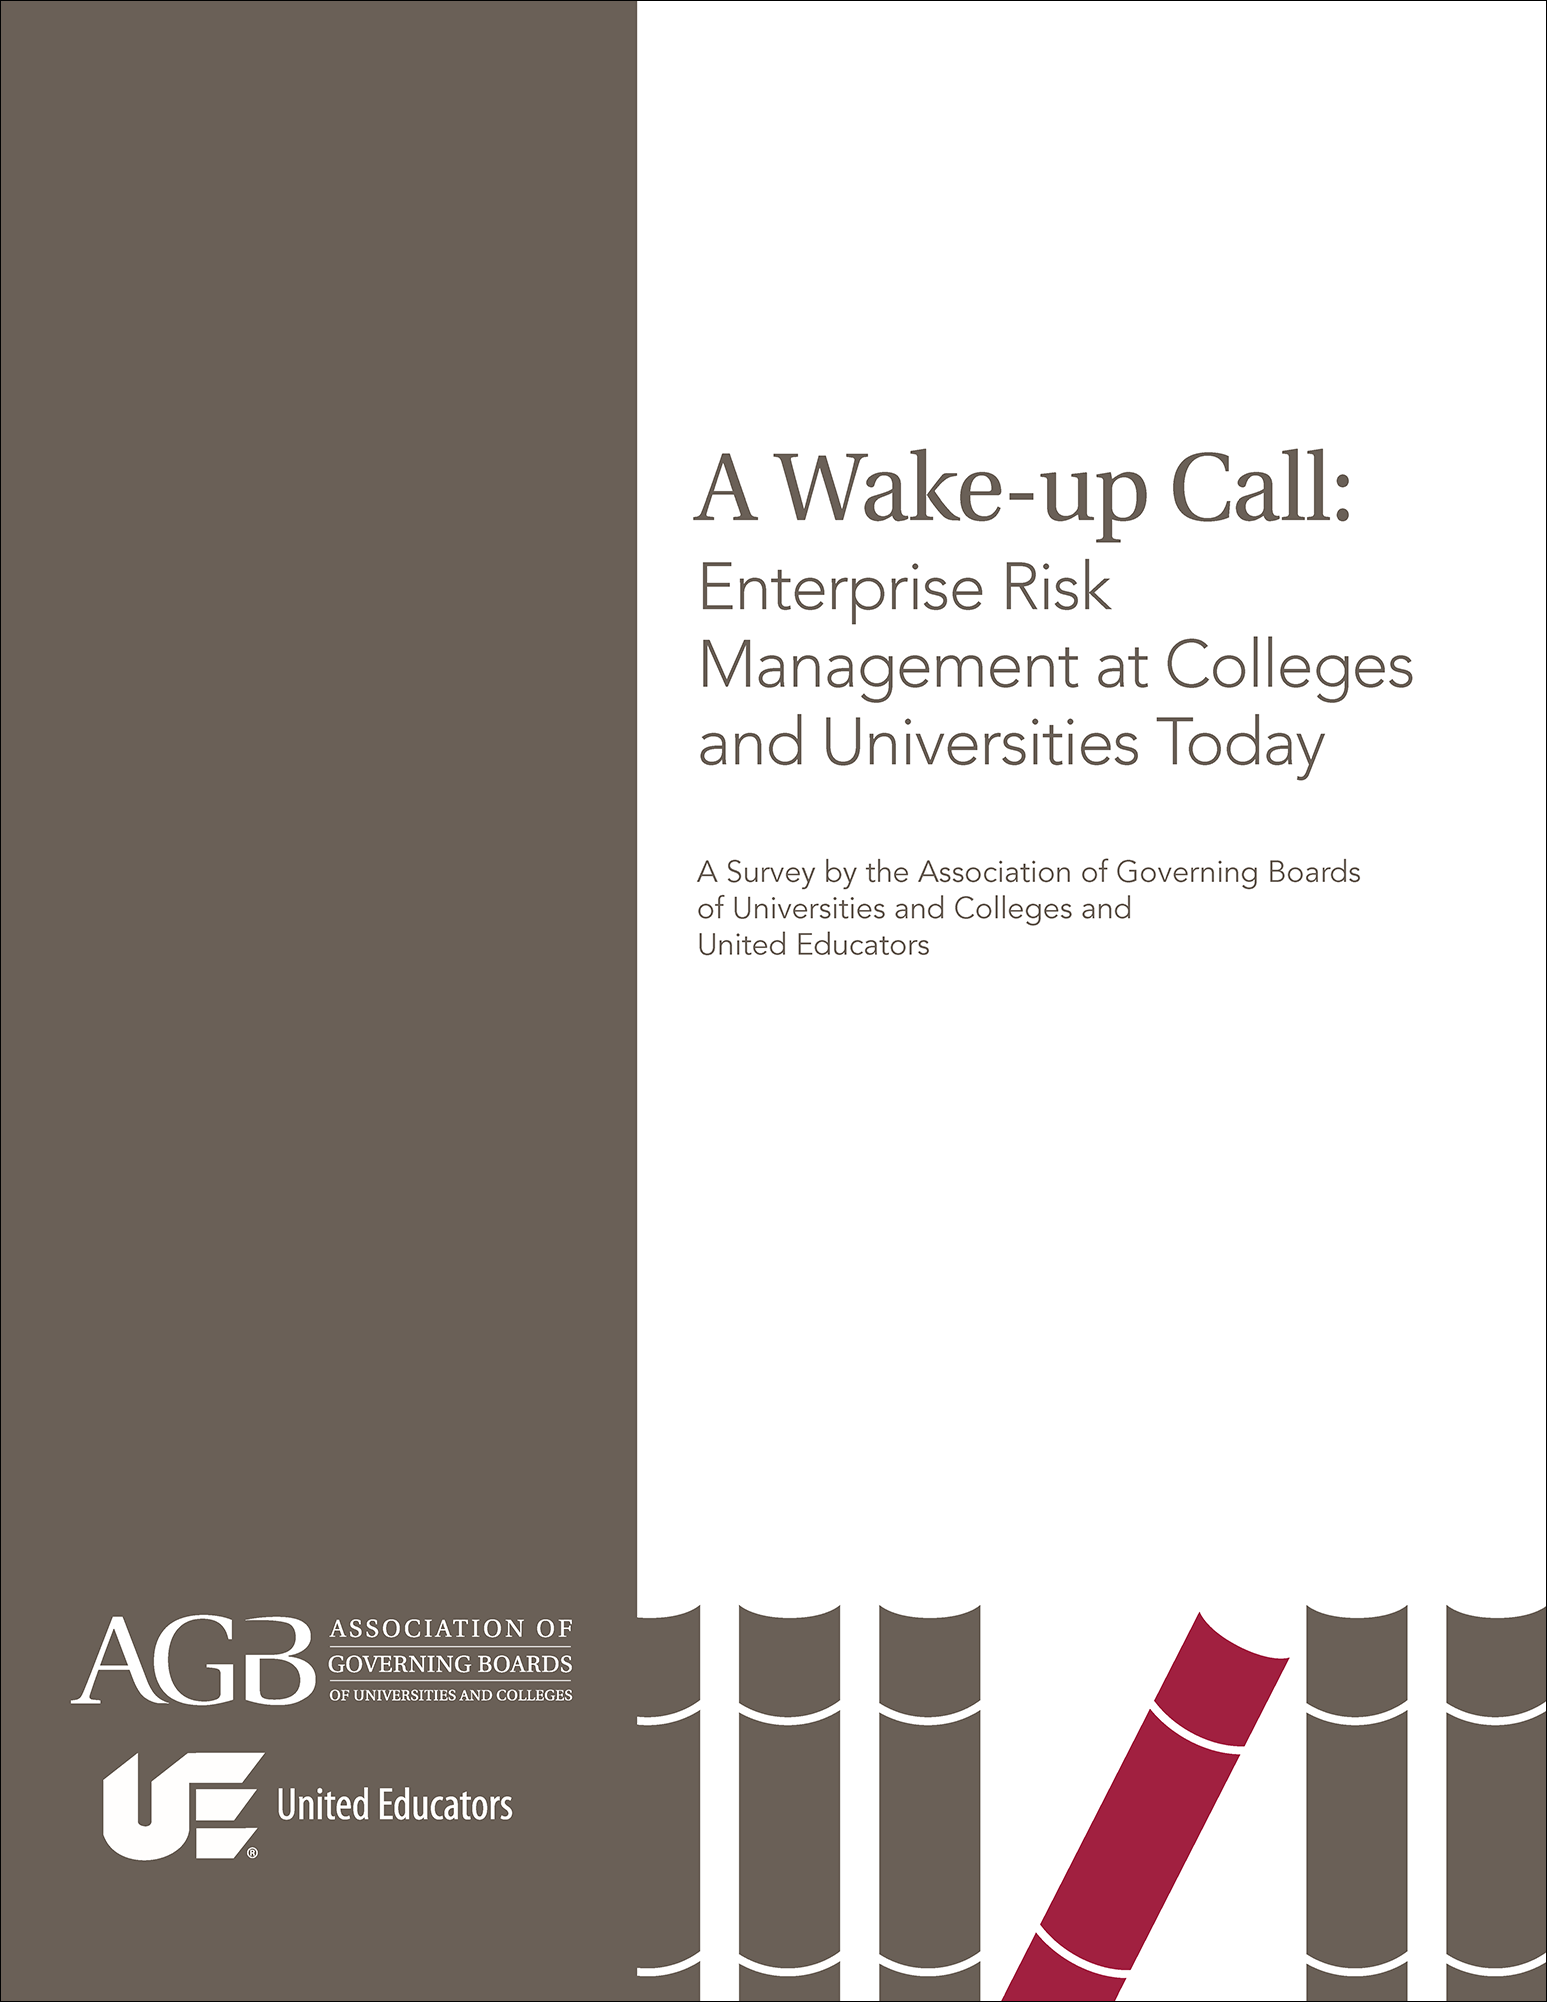 A Wake-up Call: Enterprise Risk Management at Colleges and Universities Today